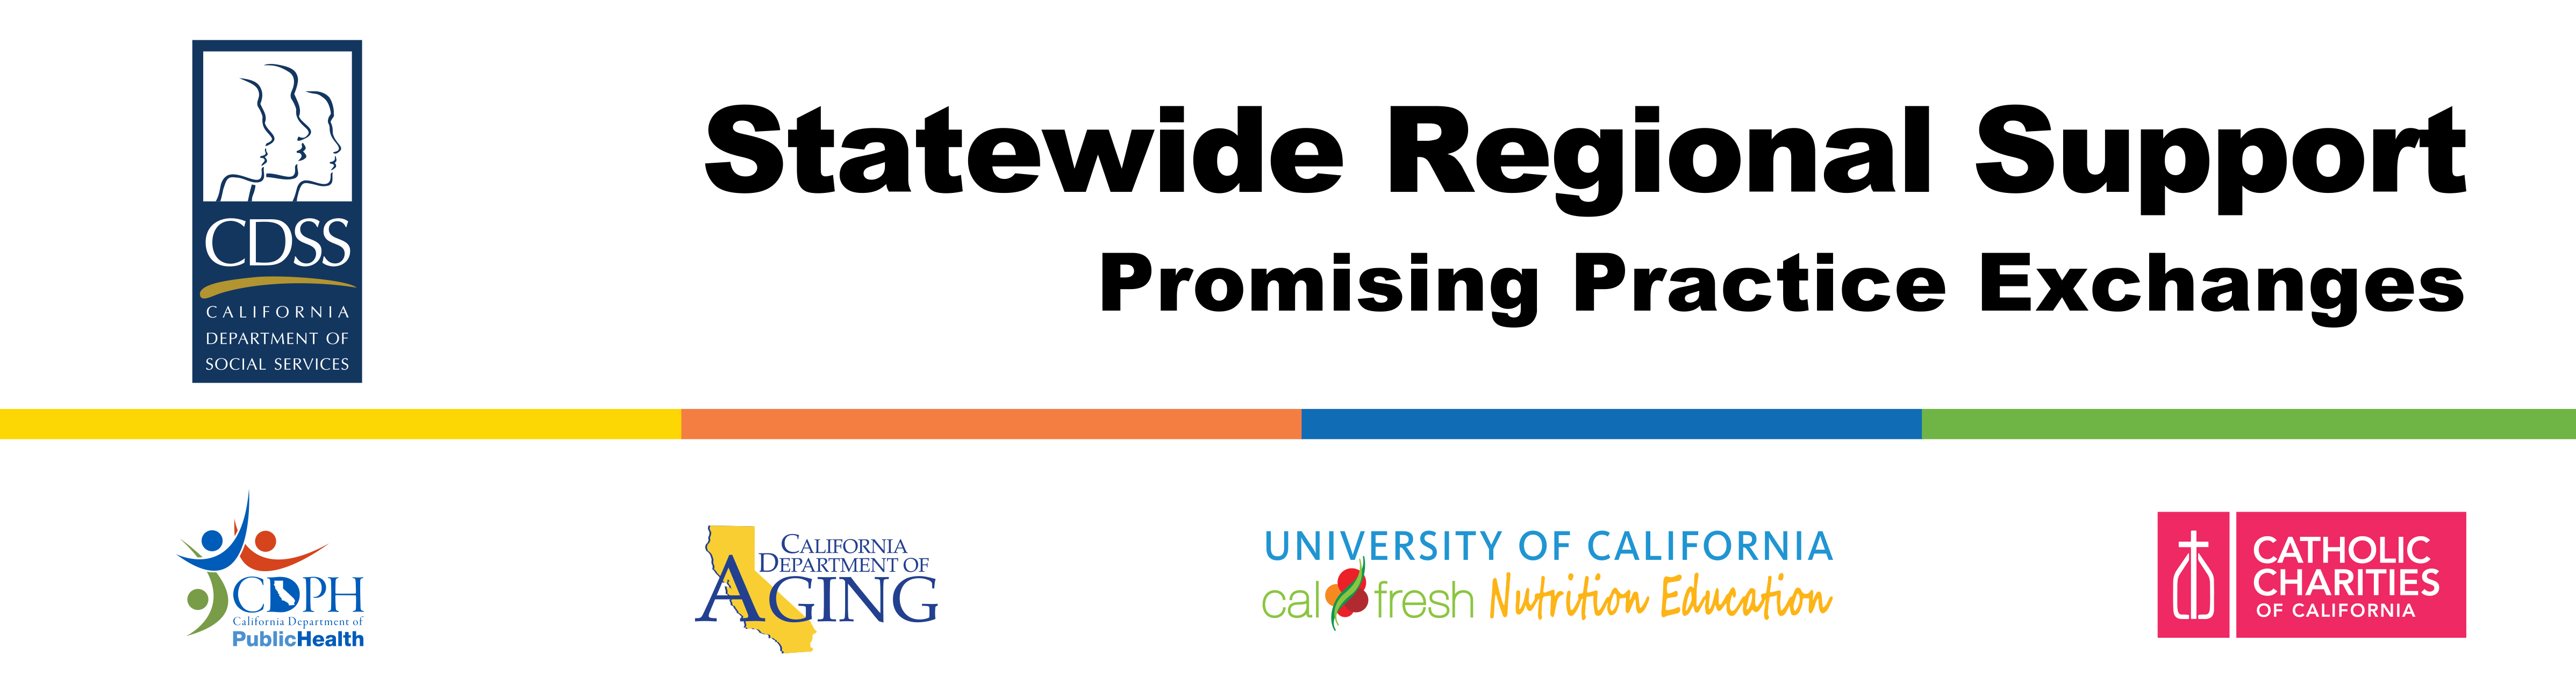 NEOPB-Statewide Regional Support-banner updated 5.